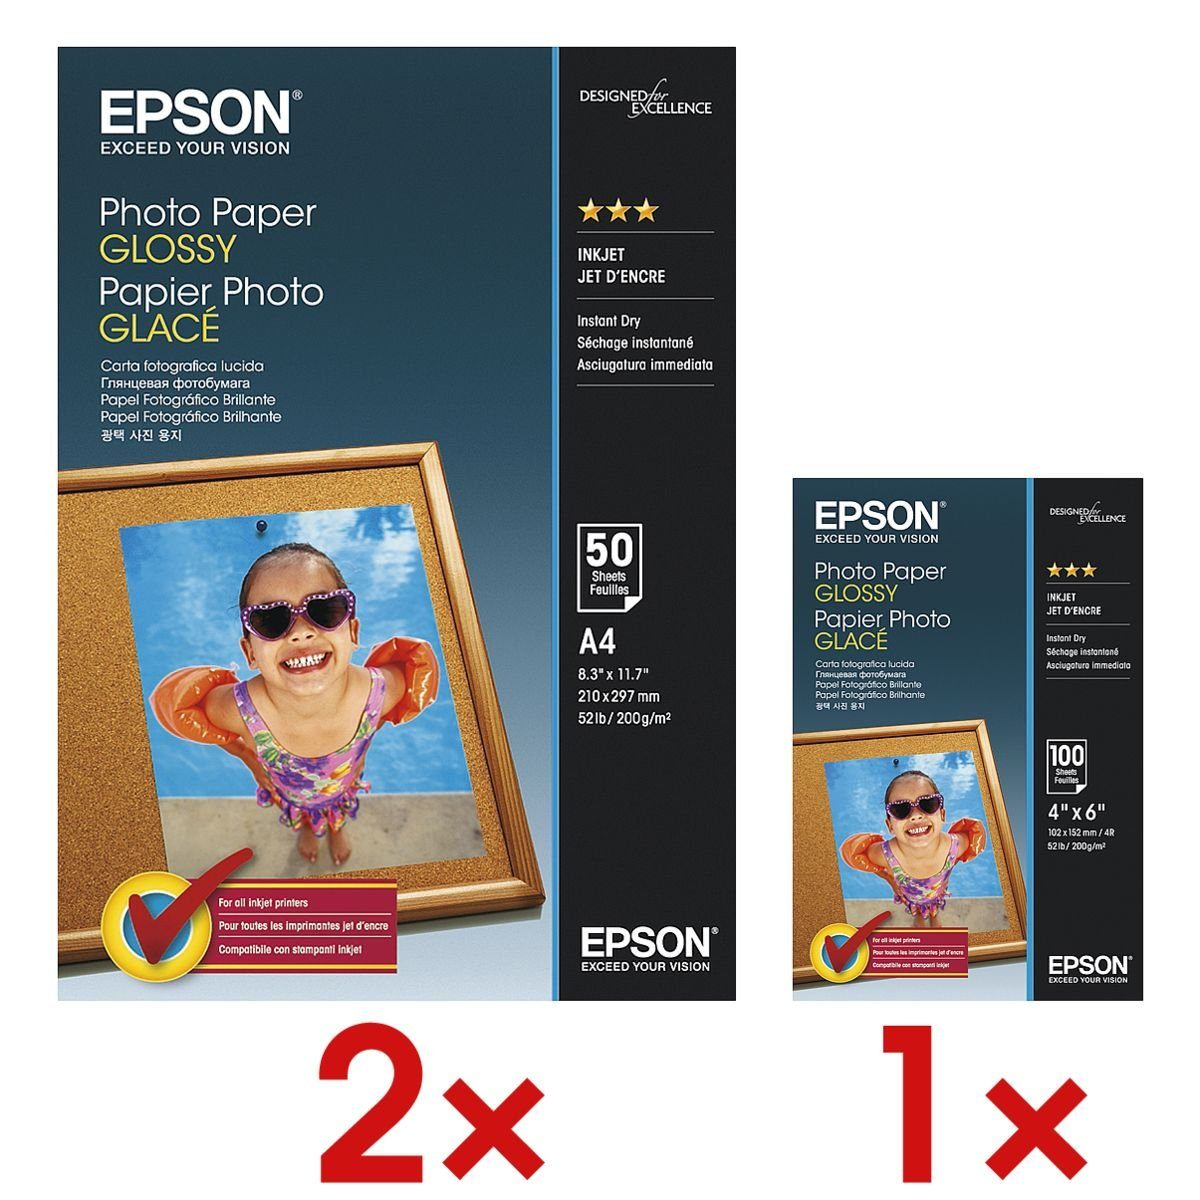 Epson 3x Fotopapier »Photo Paper Glossy« 1 Set